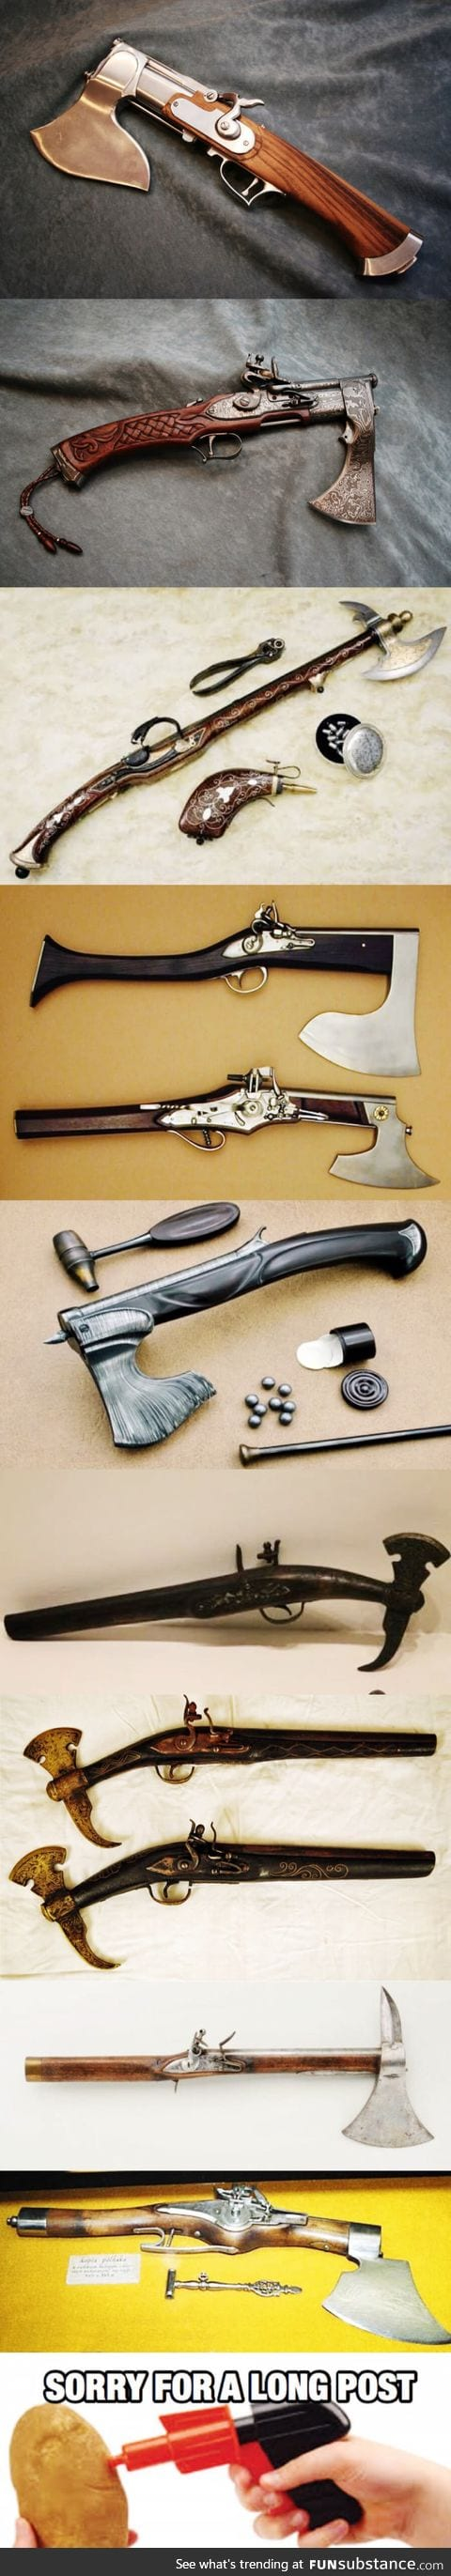 16-18th centuries Flintlock axe pistols (and a rifle) from various countries